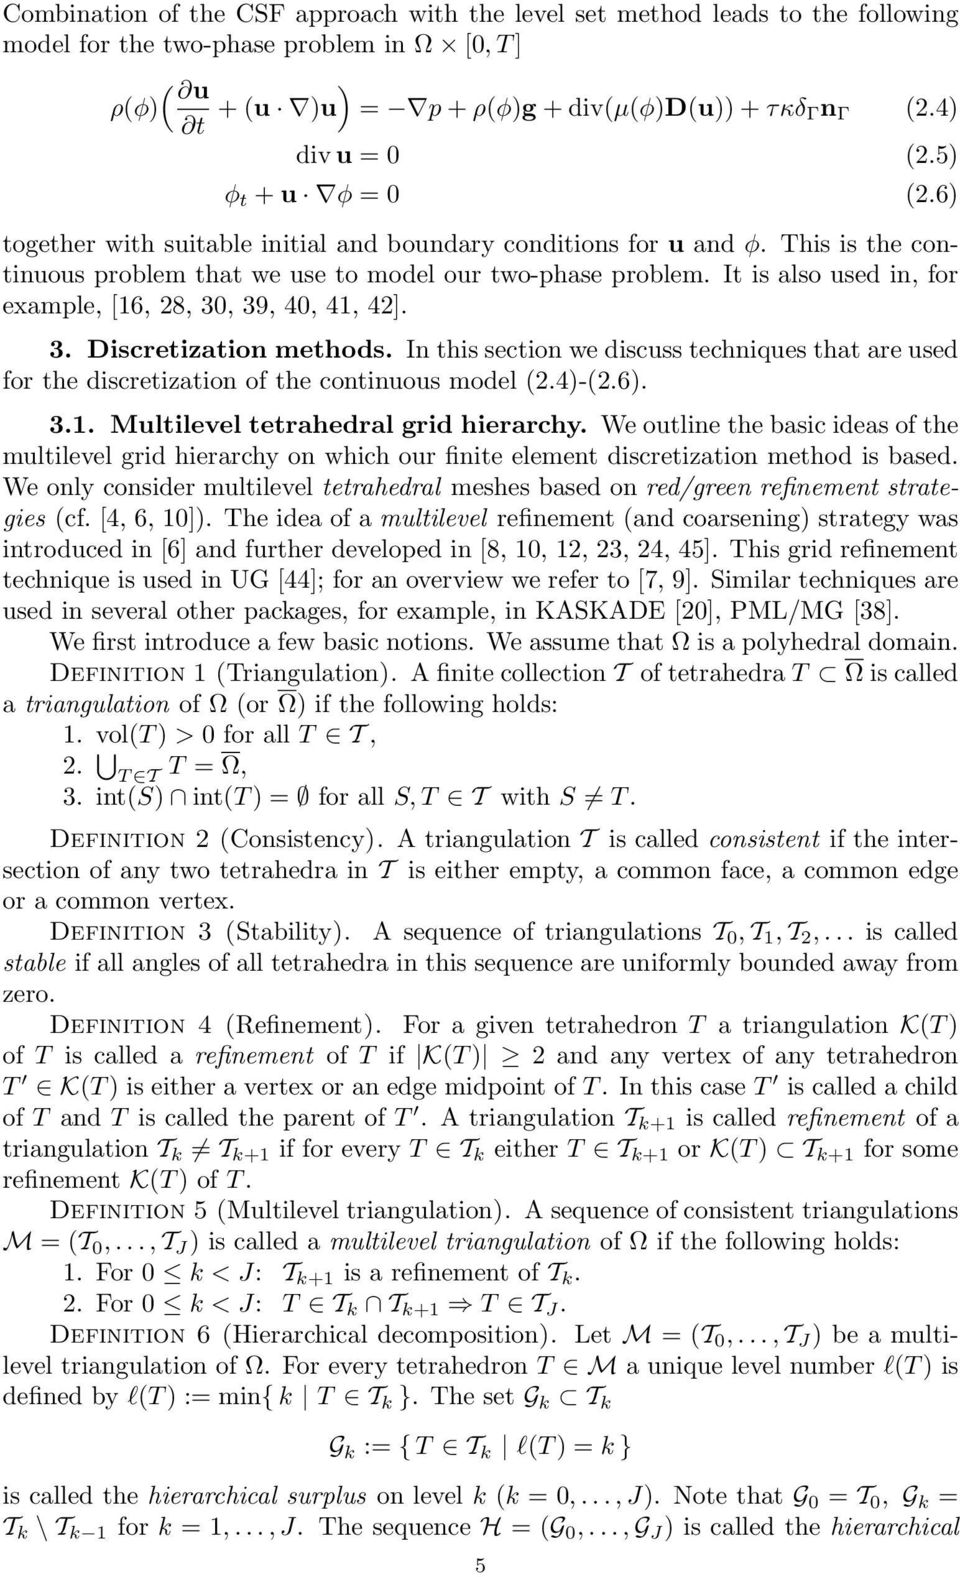 It is also used in, for example, [16, 28, 30, 39, 40, 41, 42]. 3. Discretization methods. In this section we discuss techniques that are used for the discretization of the continuous model (2.4)-(2.